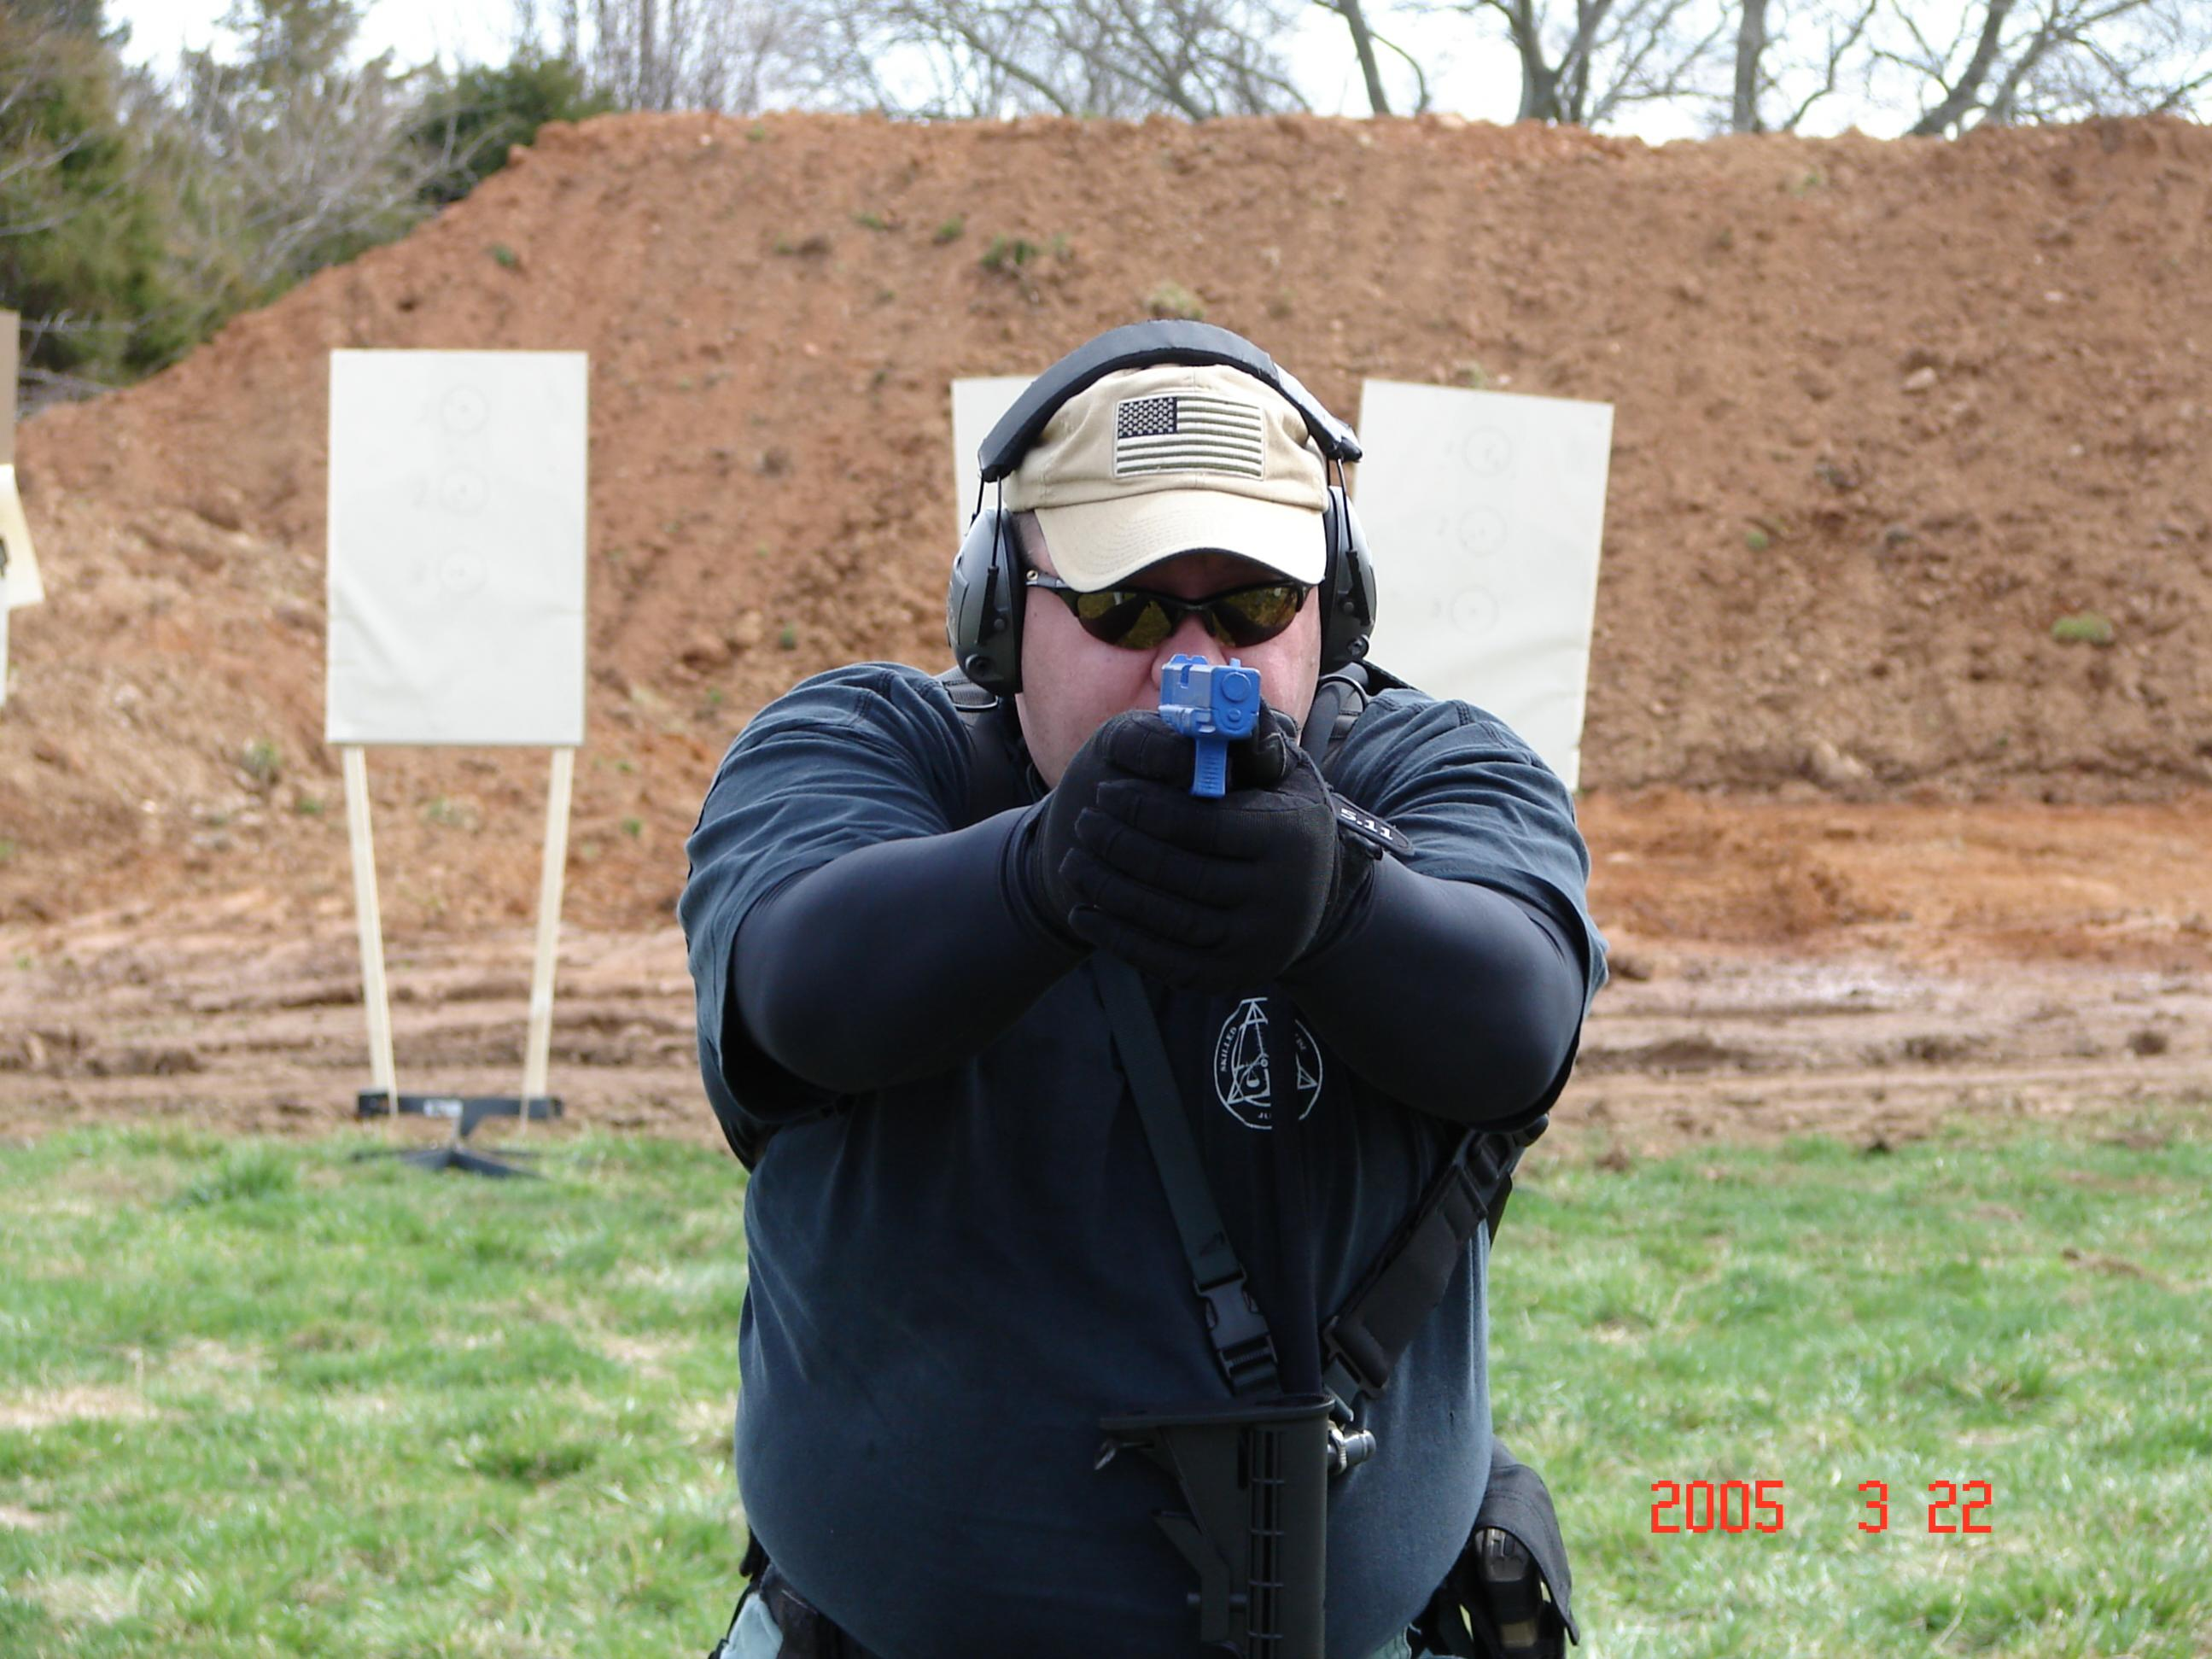 Pictures from the PTTA M4/ Tactical Carbine Course-029.jpg